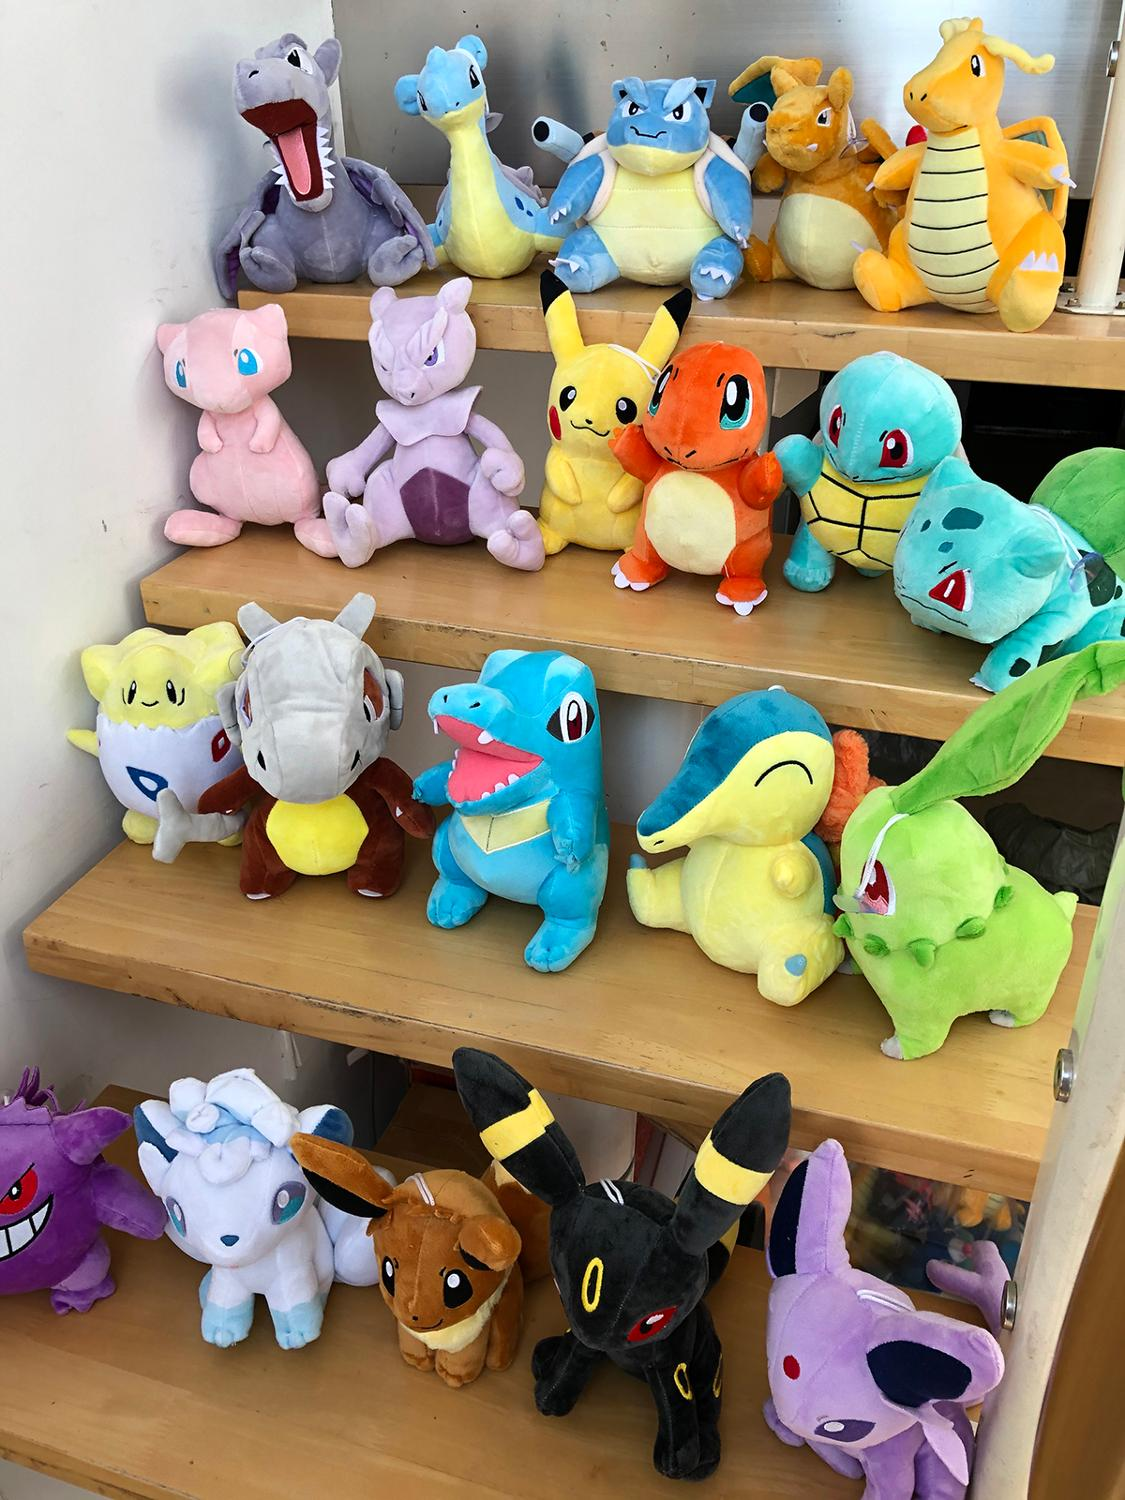 Stuffed Toy Plush-Doll Pikachued Eevee Snorlax Bulbasaur Pokemoned Squirtle Lapras Kids Gift